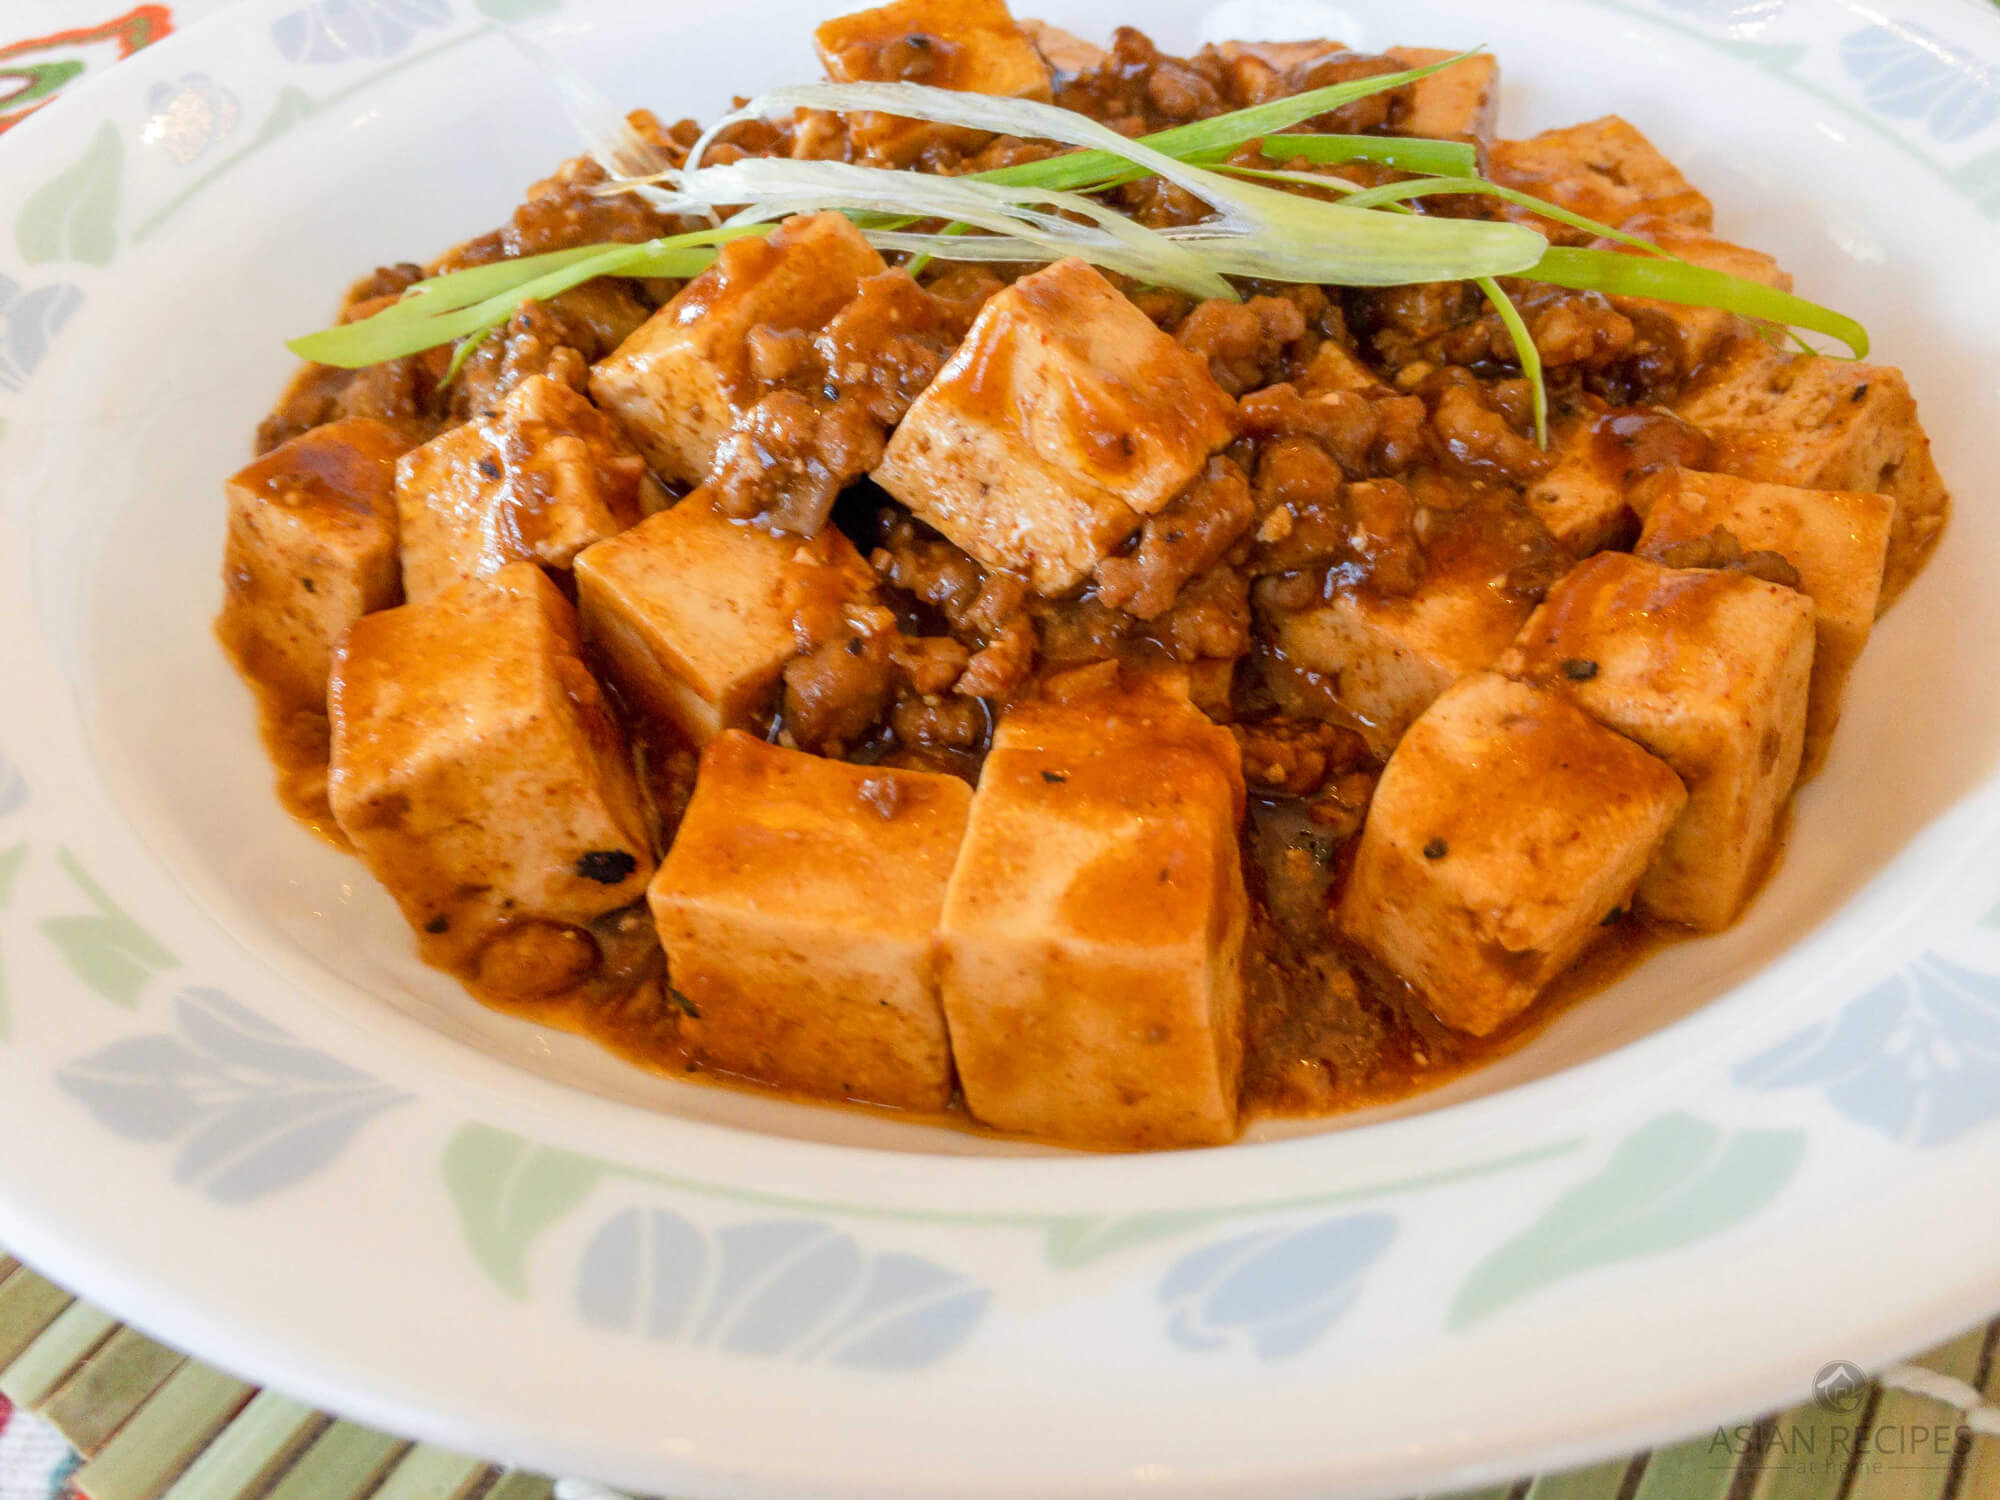 This tofu with spicy meat sauce recipe is our take on mapo tofu. This recipe is hearty and packed with protein and simmered in a spicy sauce.